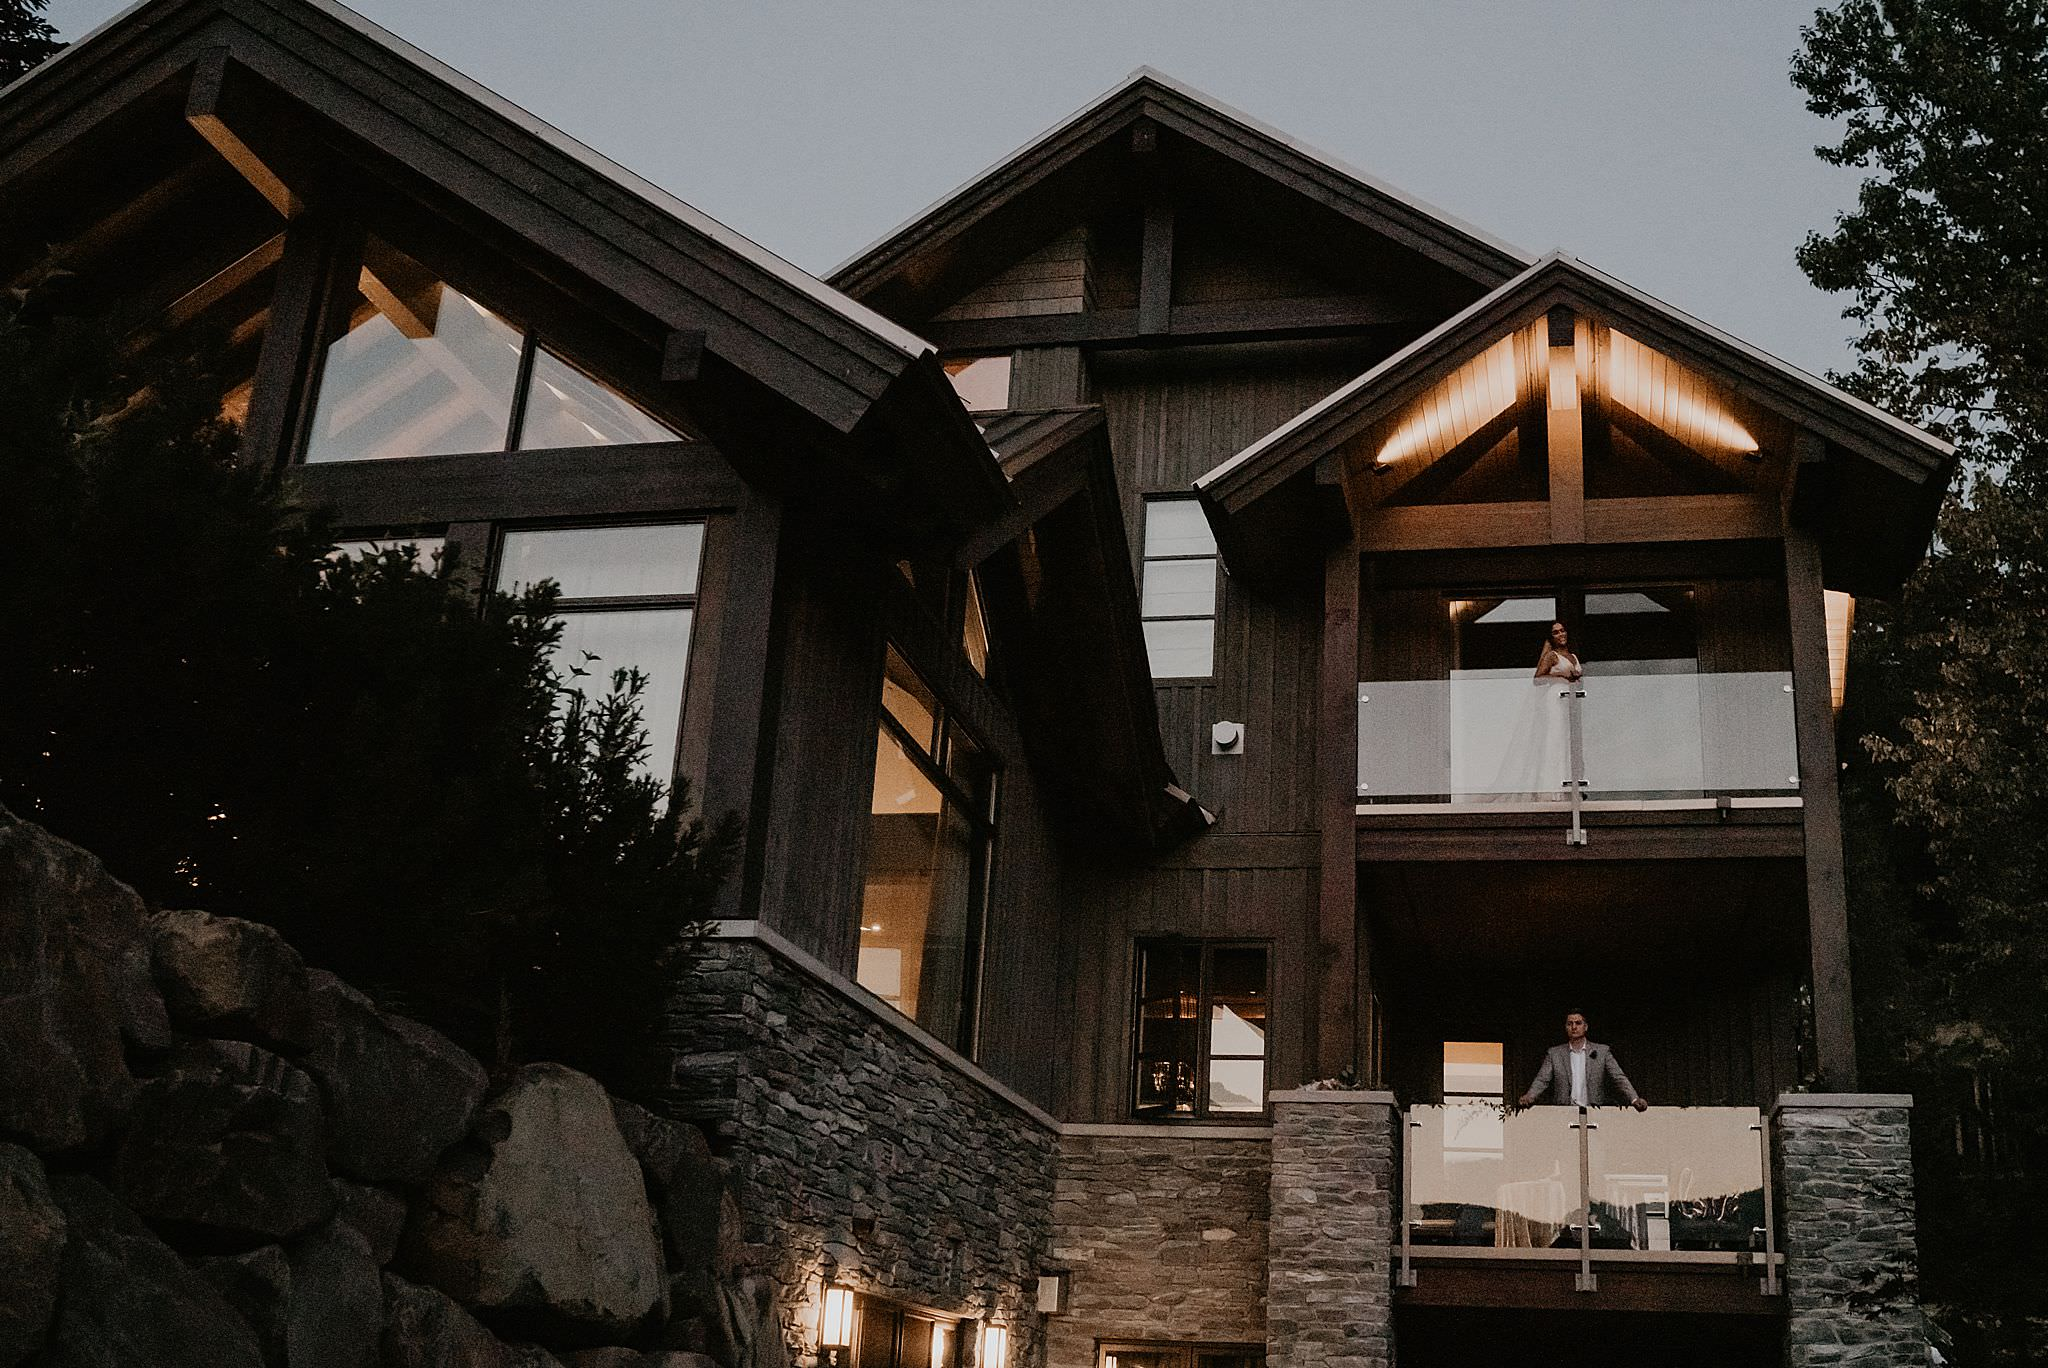 Kadenwood drive whistler platinum home rental wedding epic elopement